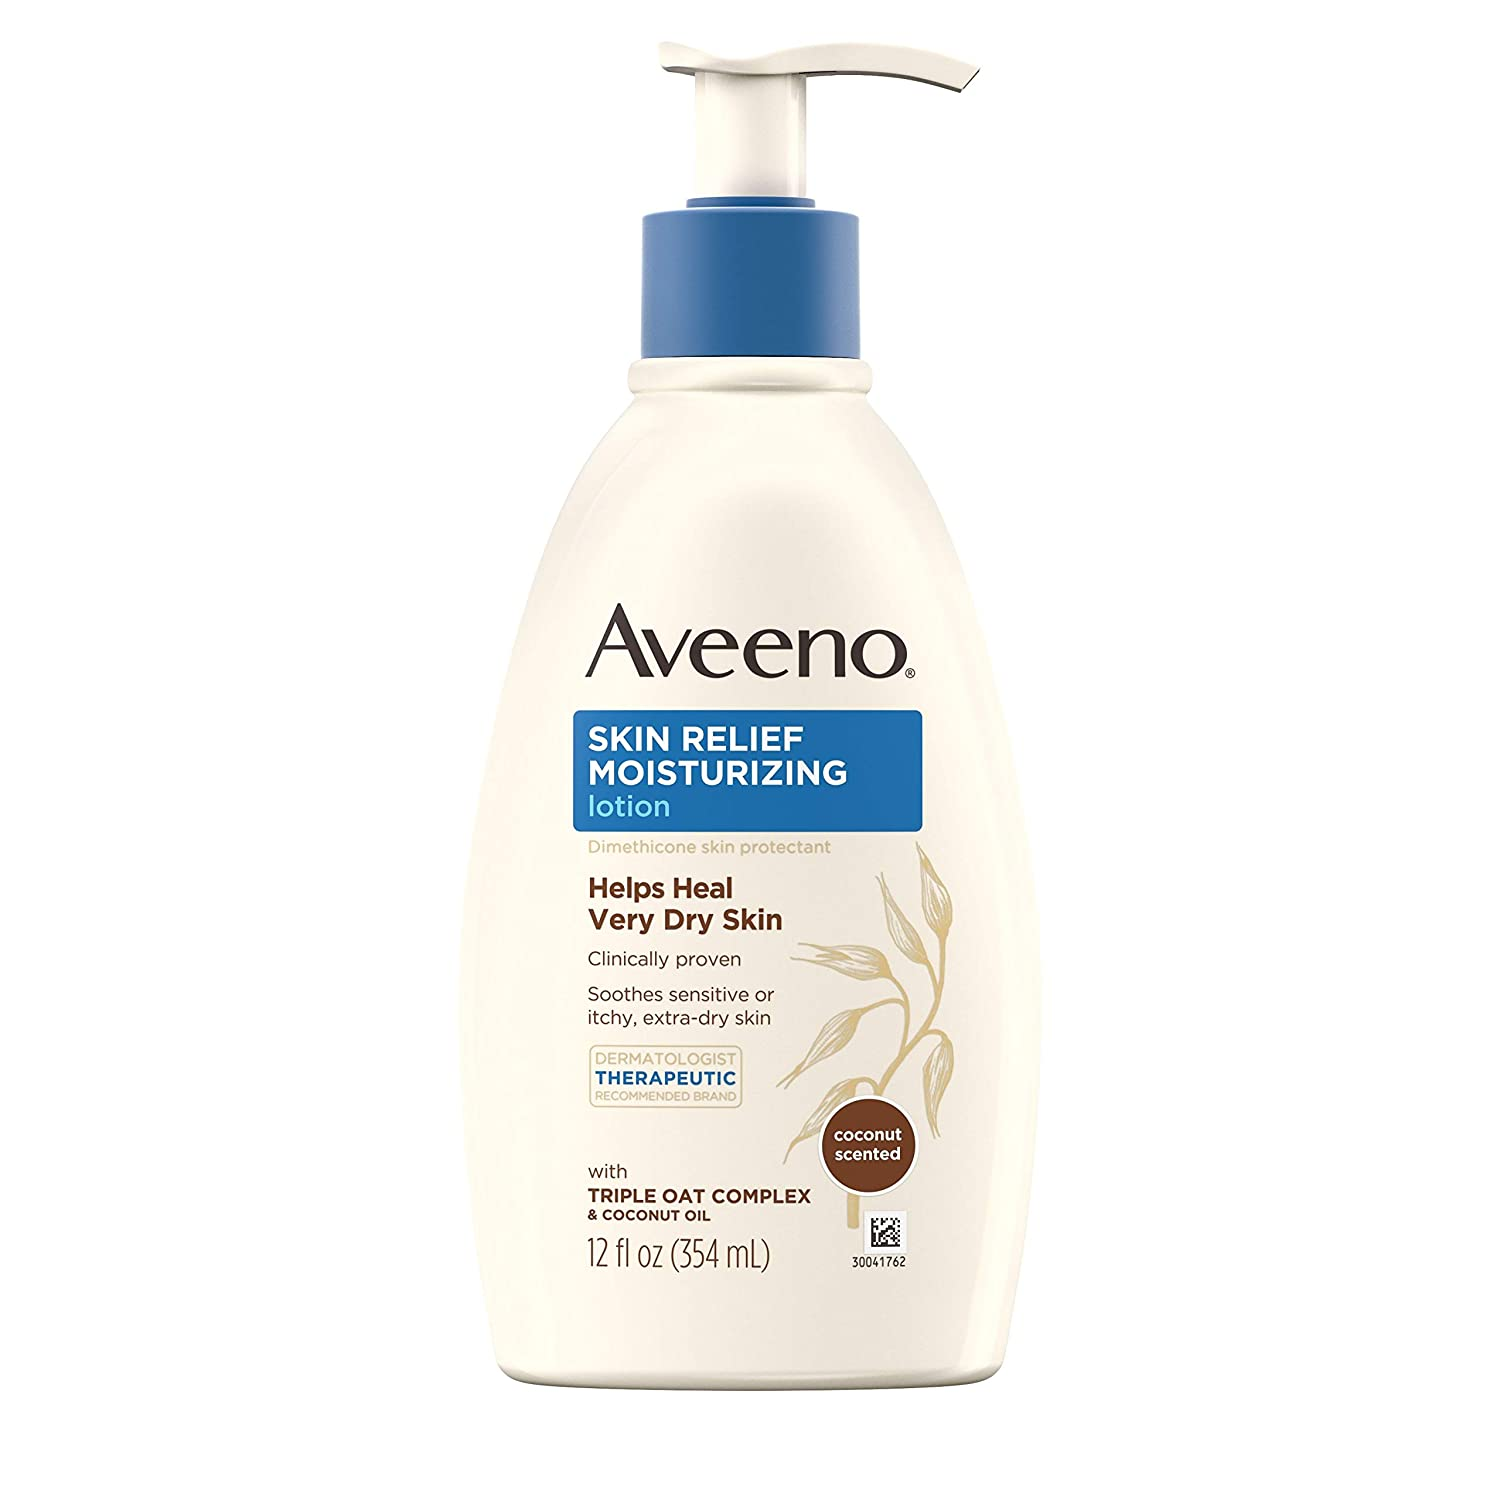 Aveeno Skin Relief Moisturizing Lotion with Coconut Scent & Triple Oat Complex, Dimethicone Skin Protectant for Sensitive & Extra-Dry Itchy Skin, 12 fl. oz